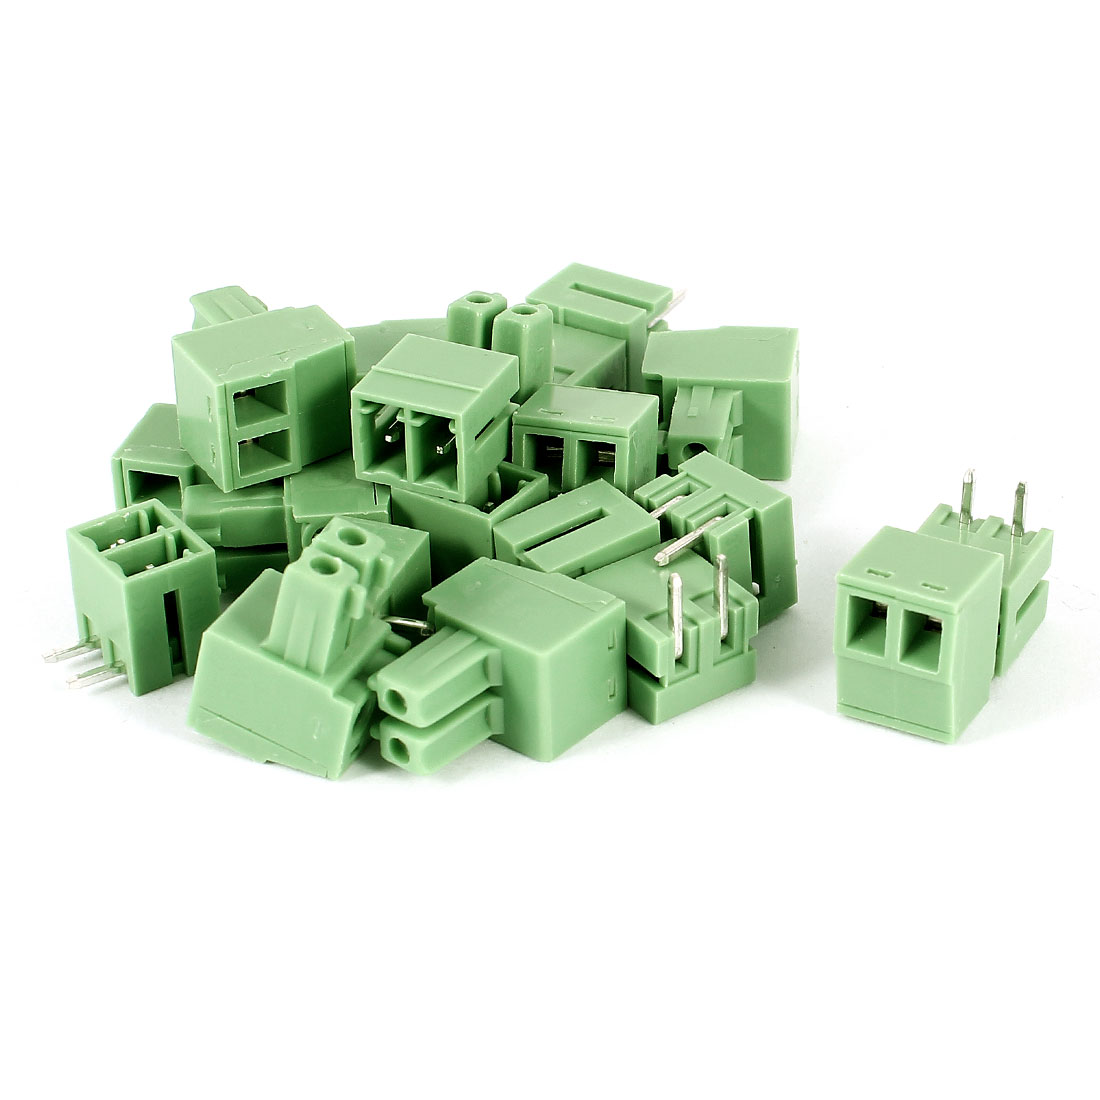 10 Pcs Green KF2EDG 3.81mm 2Position Right Angle 2Pin Pluggable Screw Terminal Block Connector 300V 8A